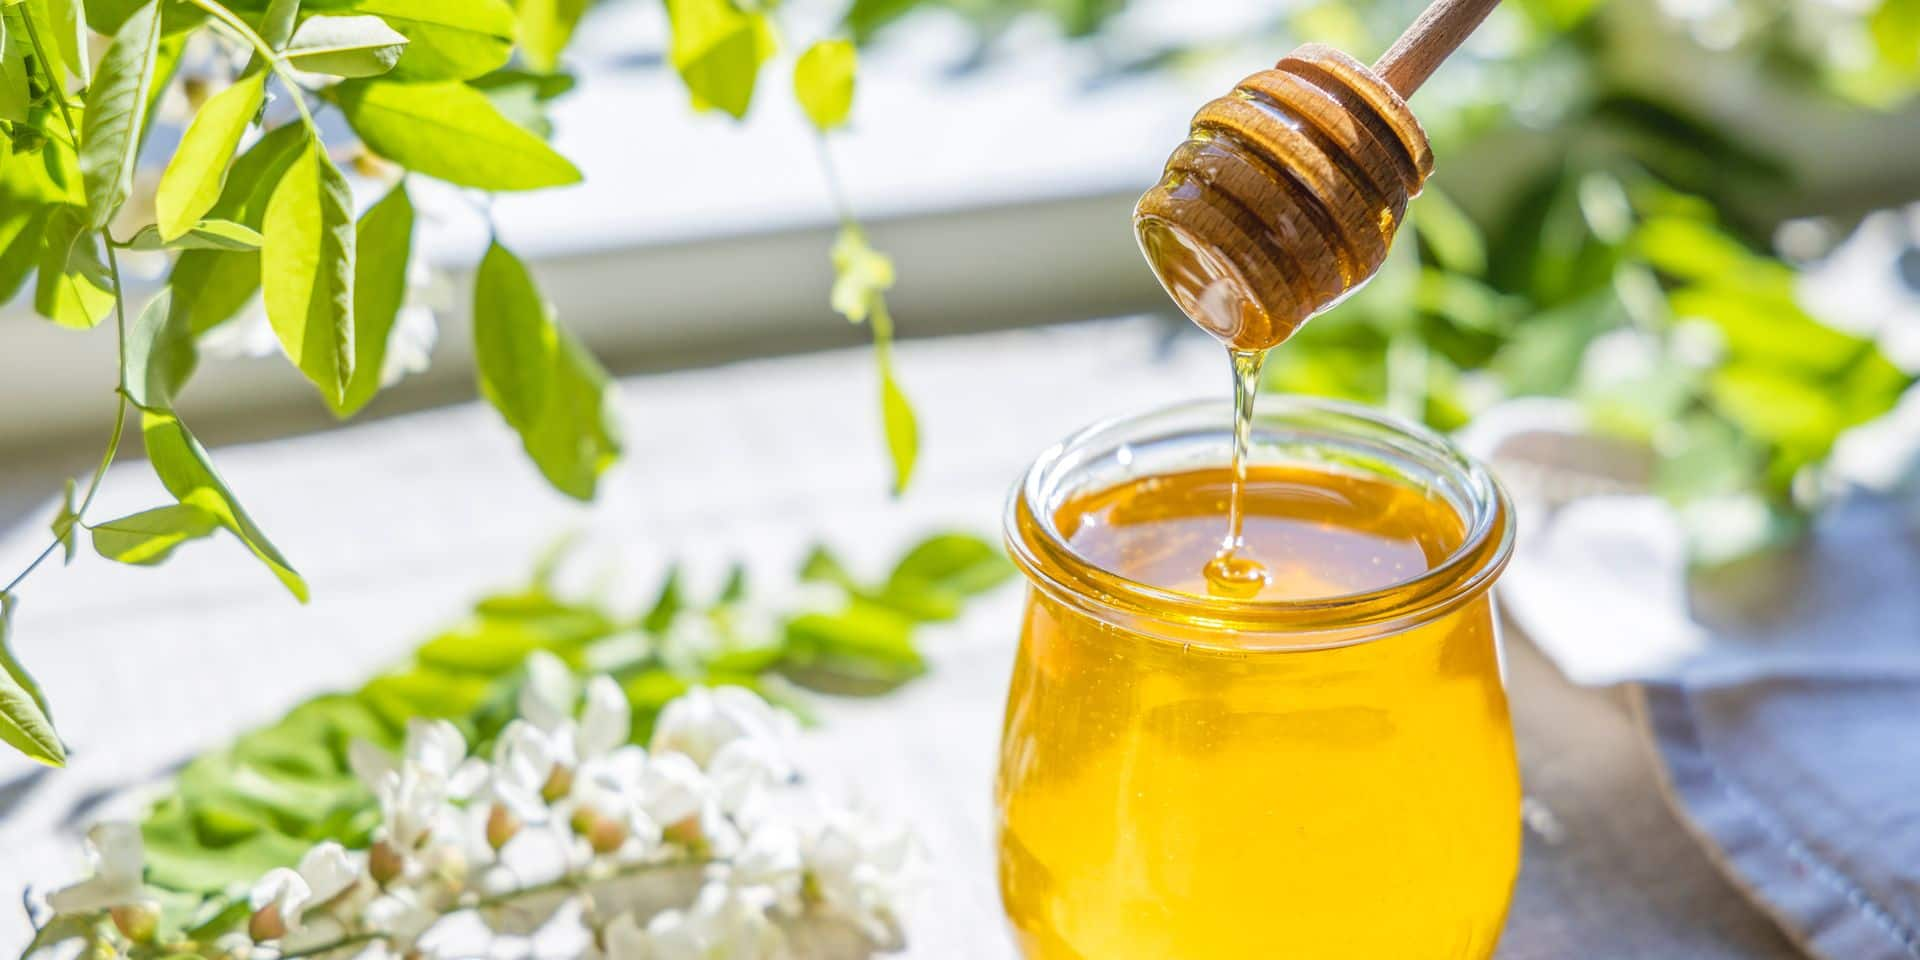 Sweet,Honey,Jar,Surrounded,Spring,Acacia,Blossoms.,Honey,Flows,From